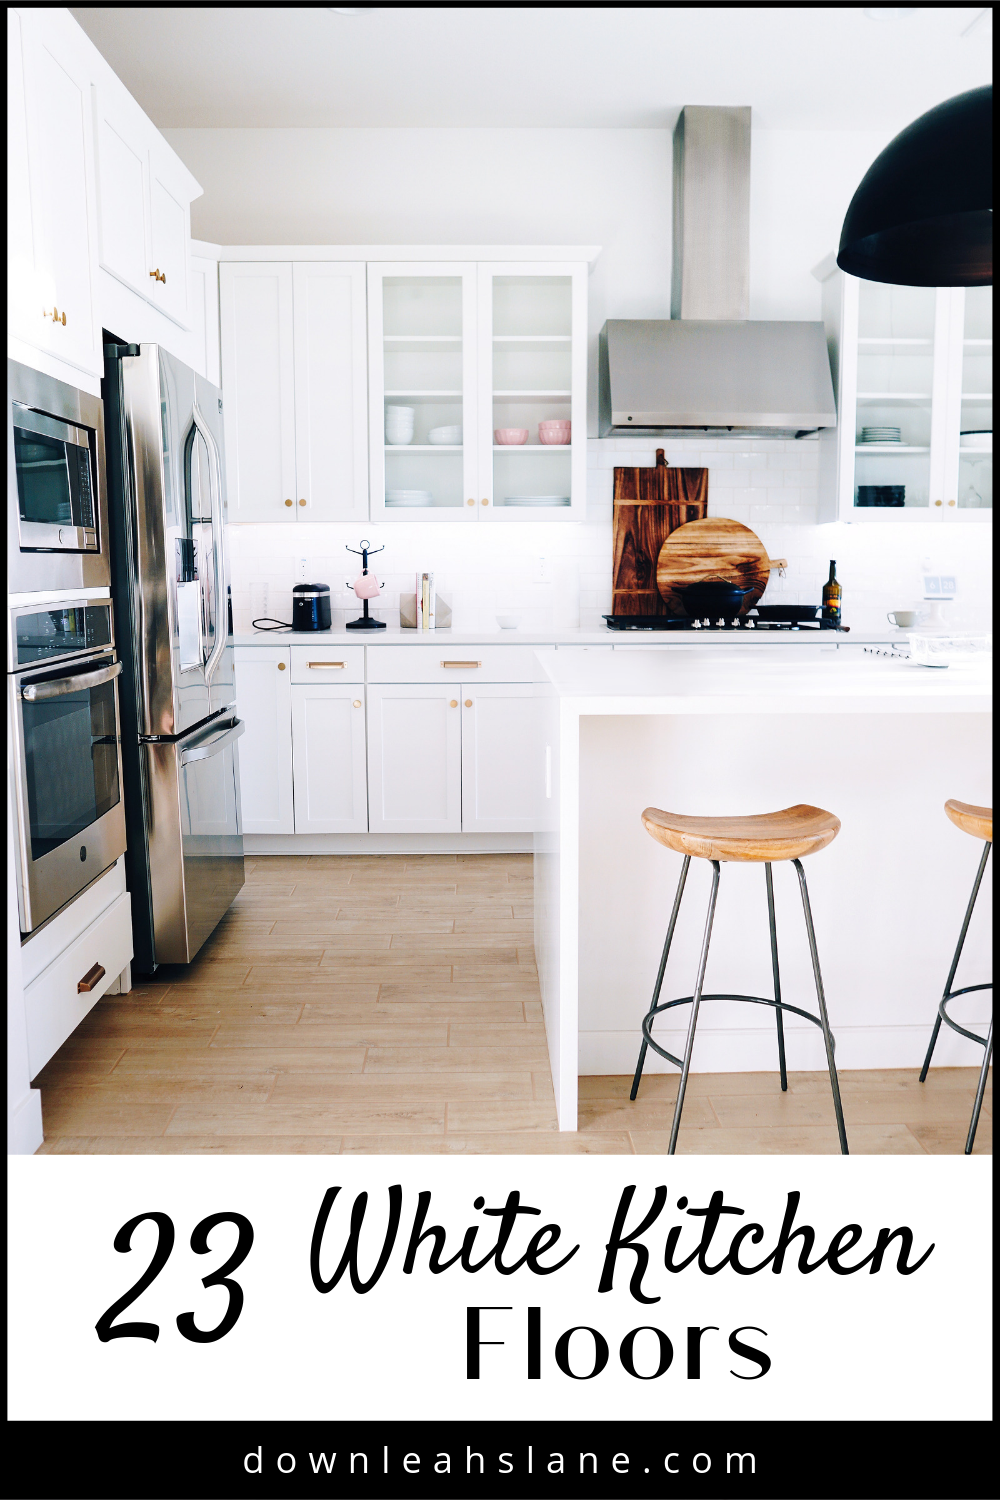 9 White Kitchens Without Wood Floors   Down Leah's Lane   Kitchen ...